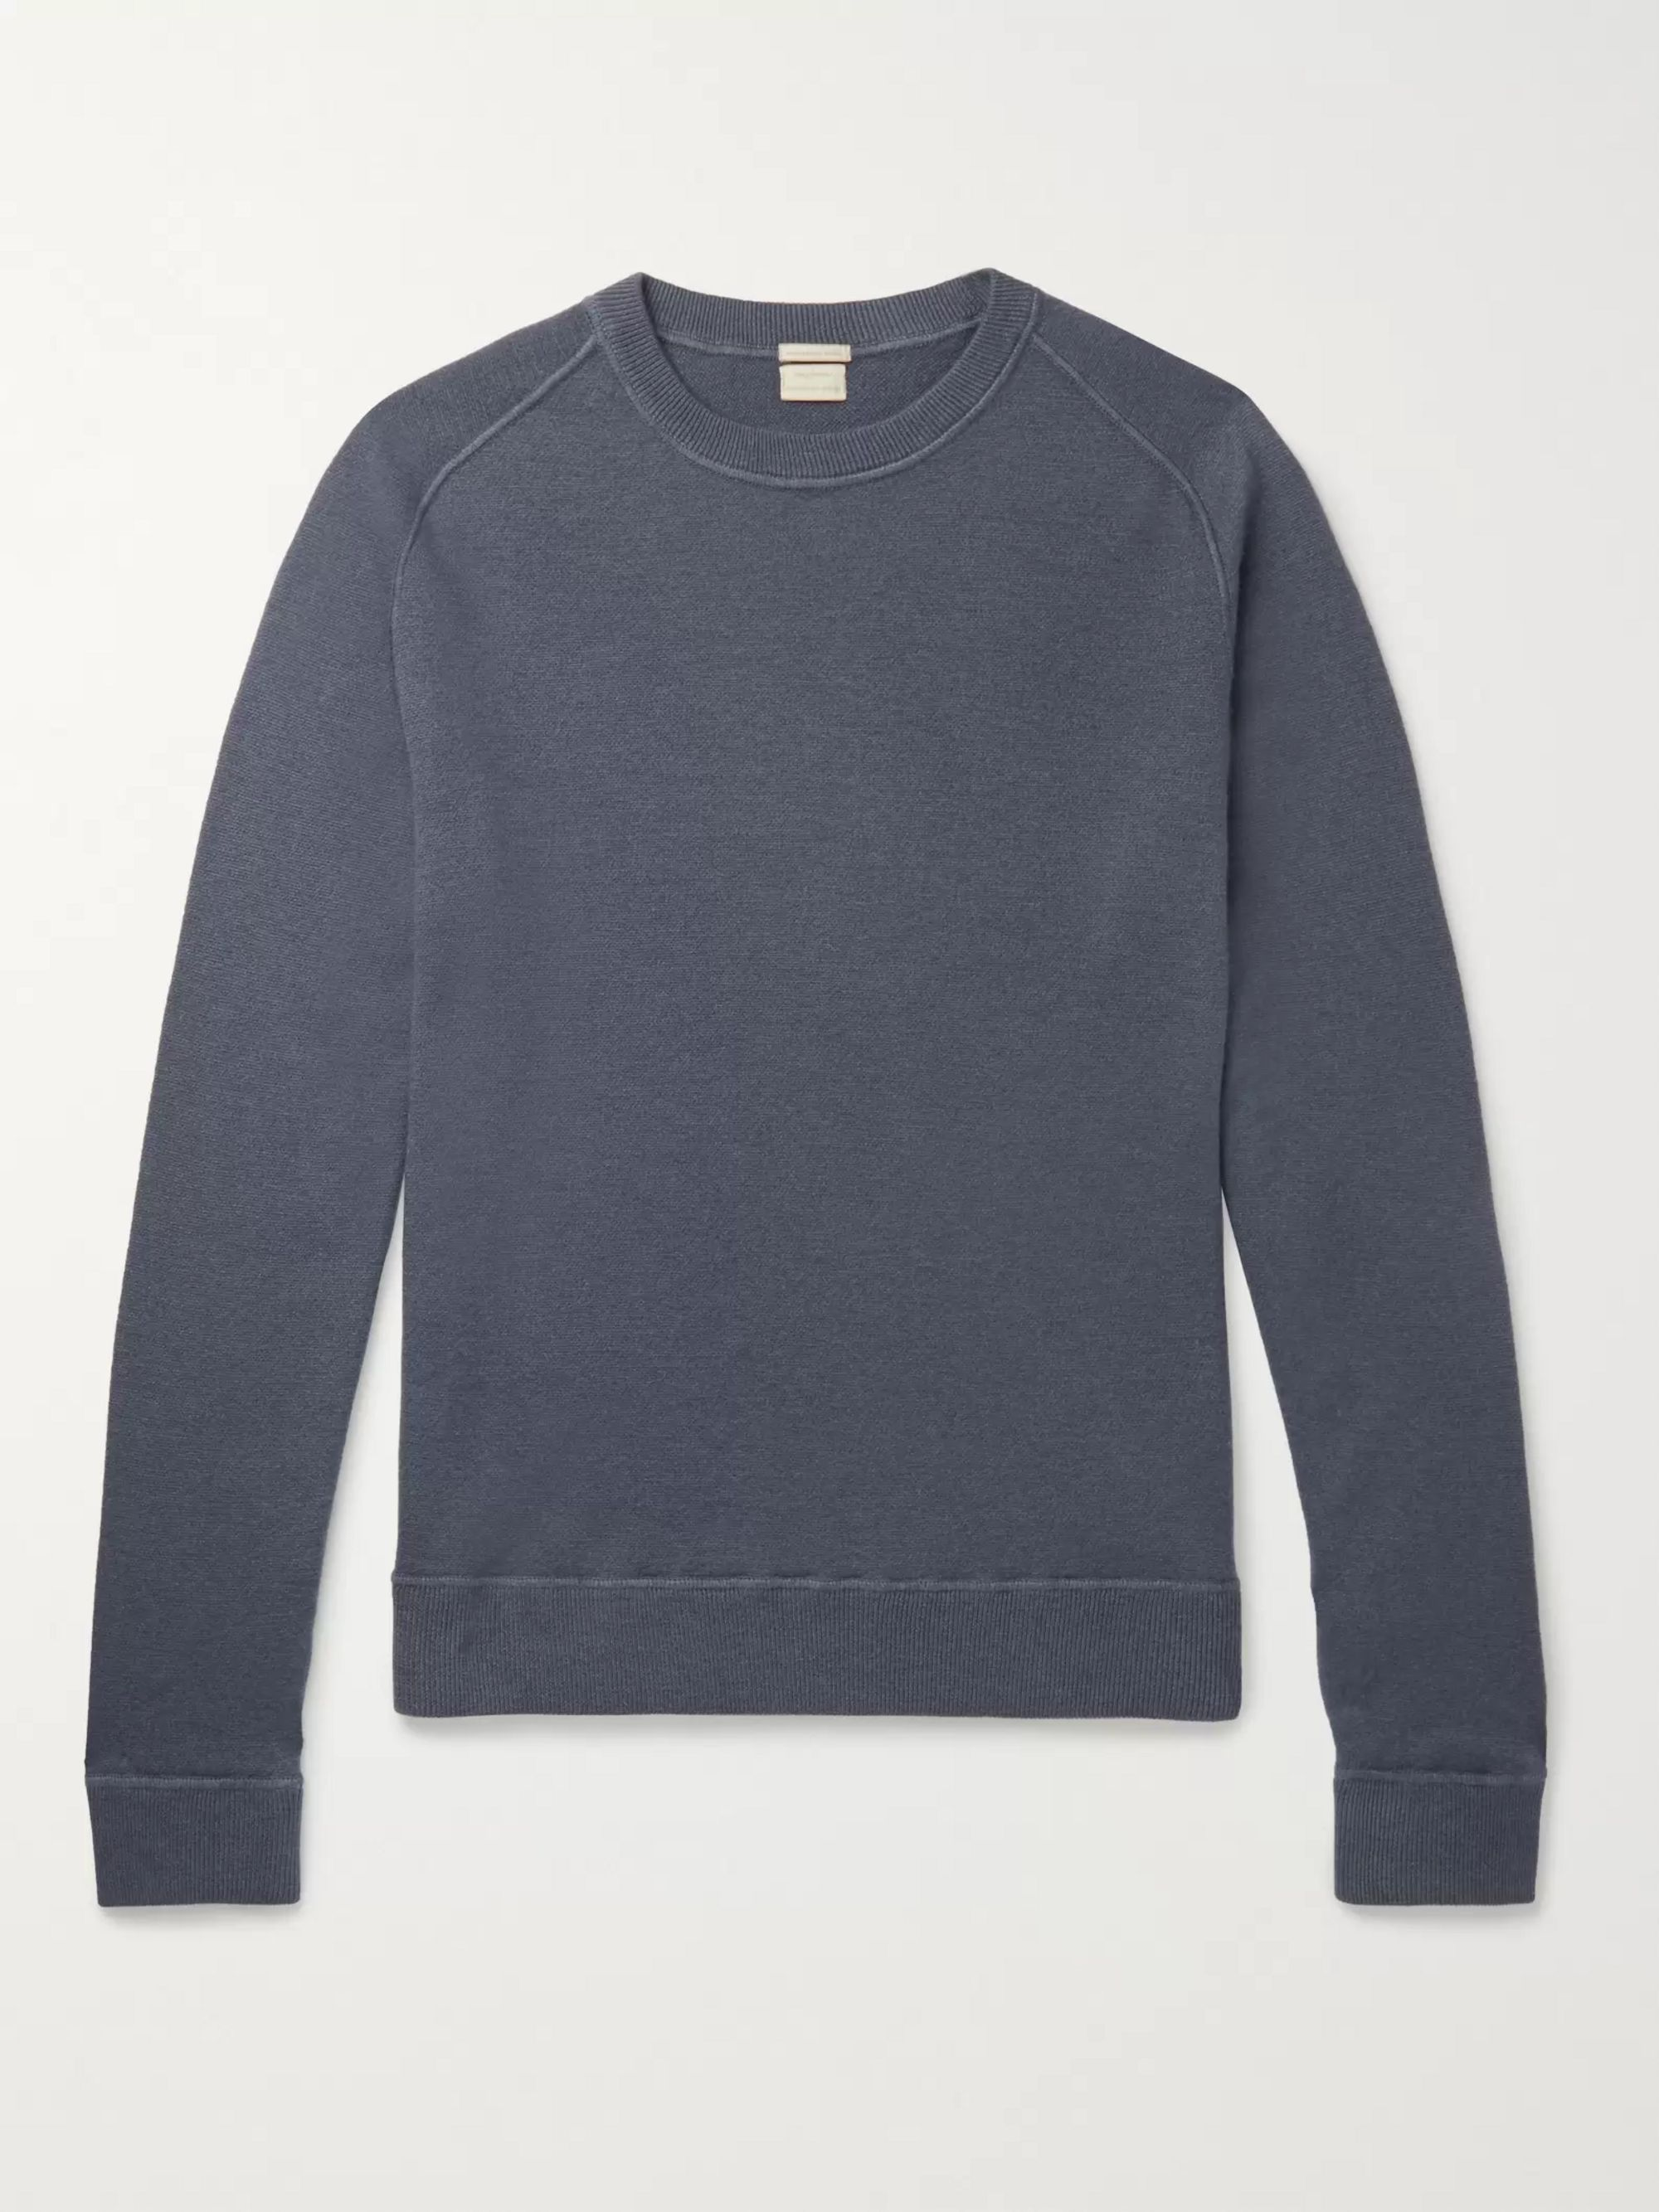 4f731f69a44 Garment-Dyed Cashmere Sweater